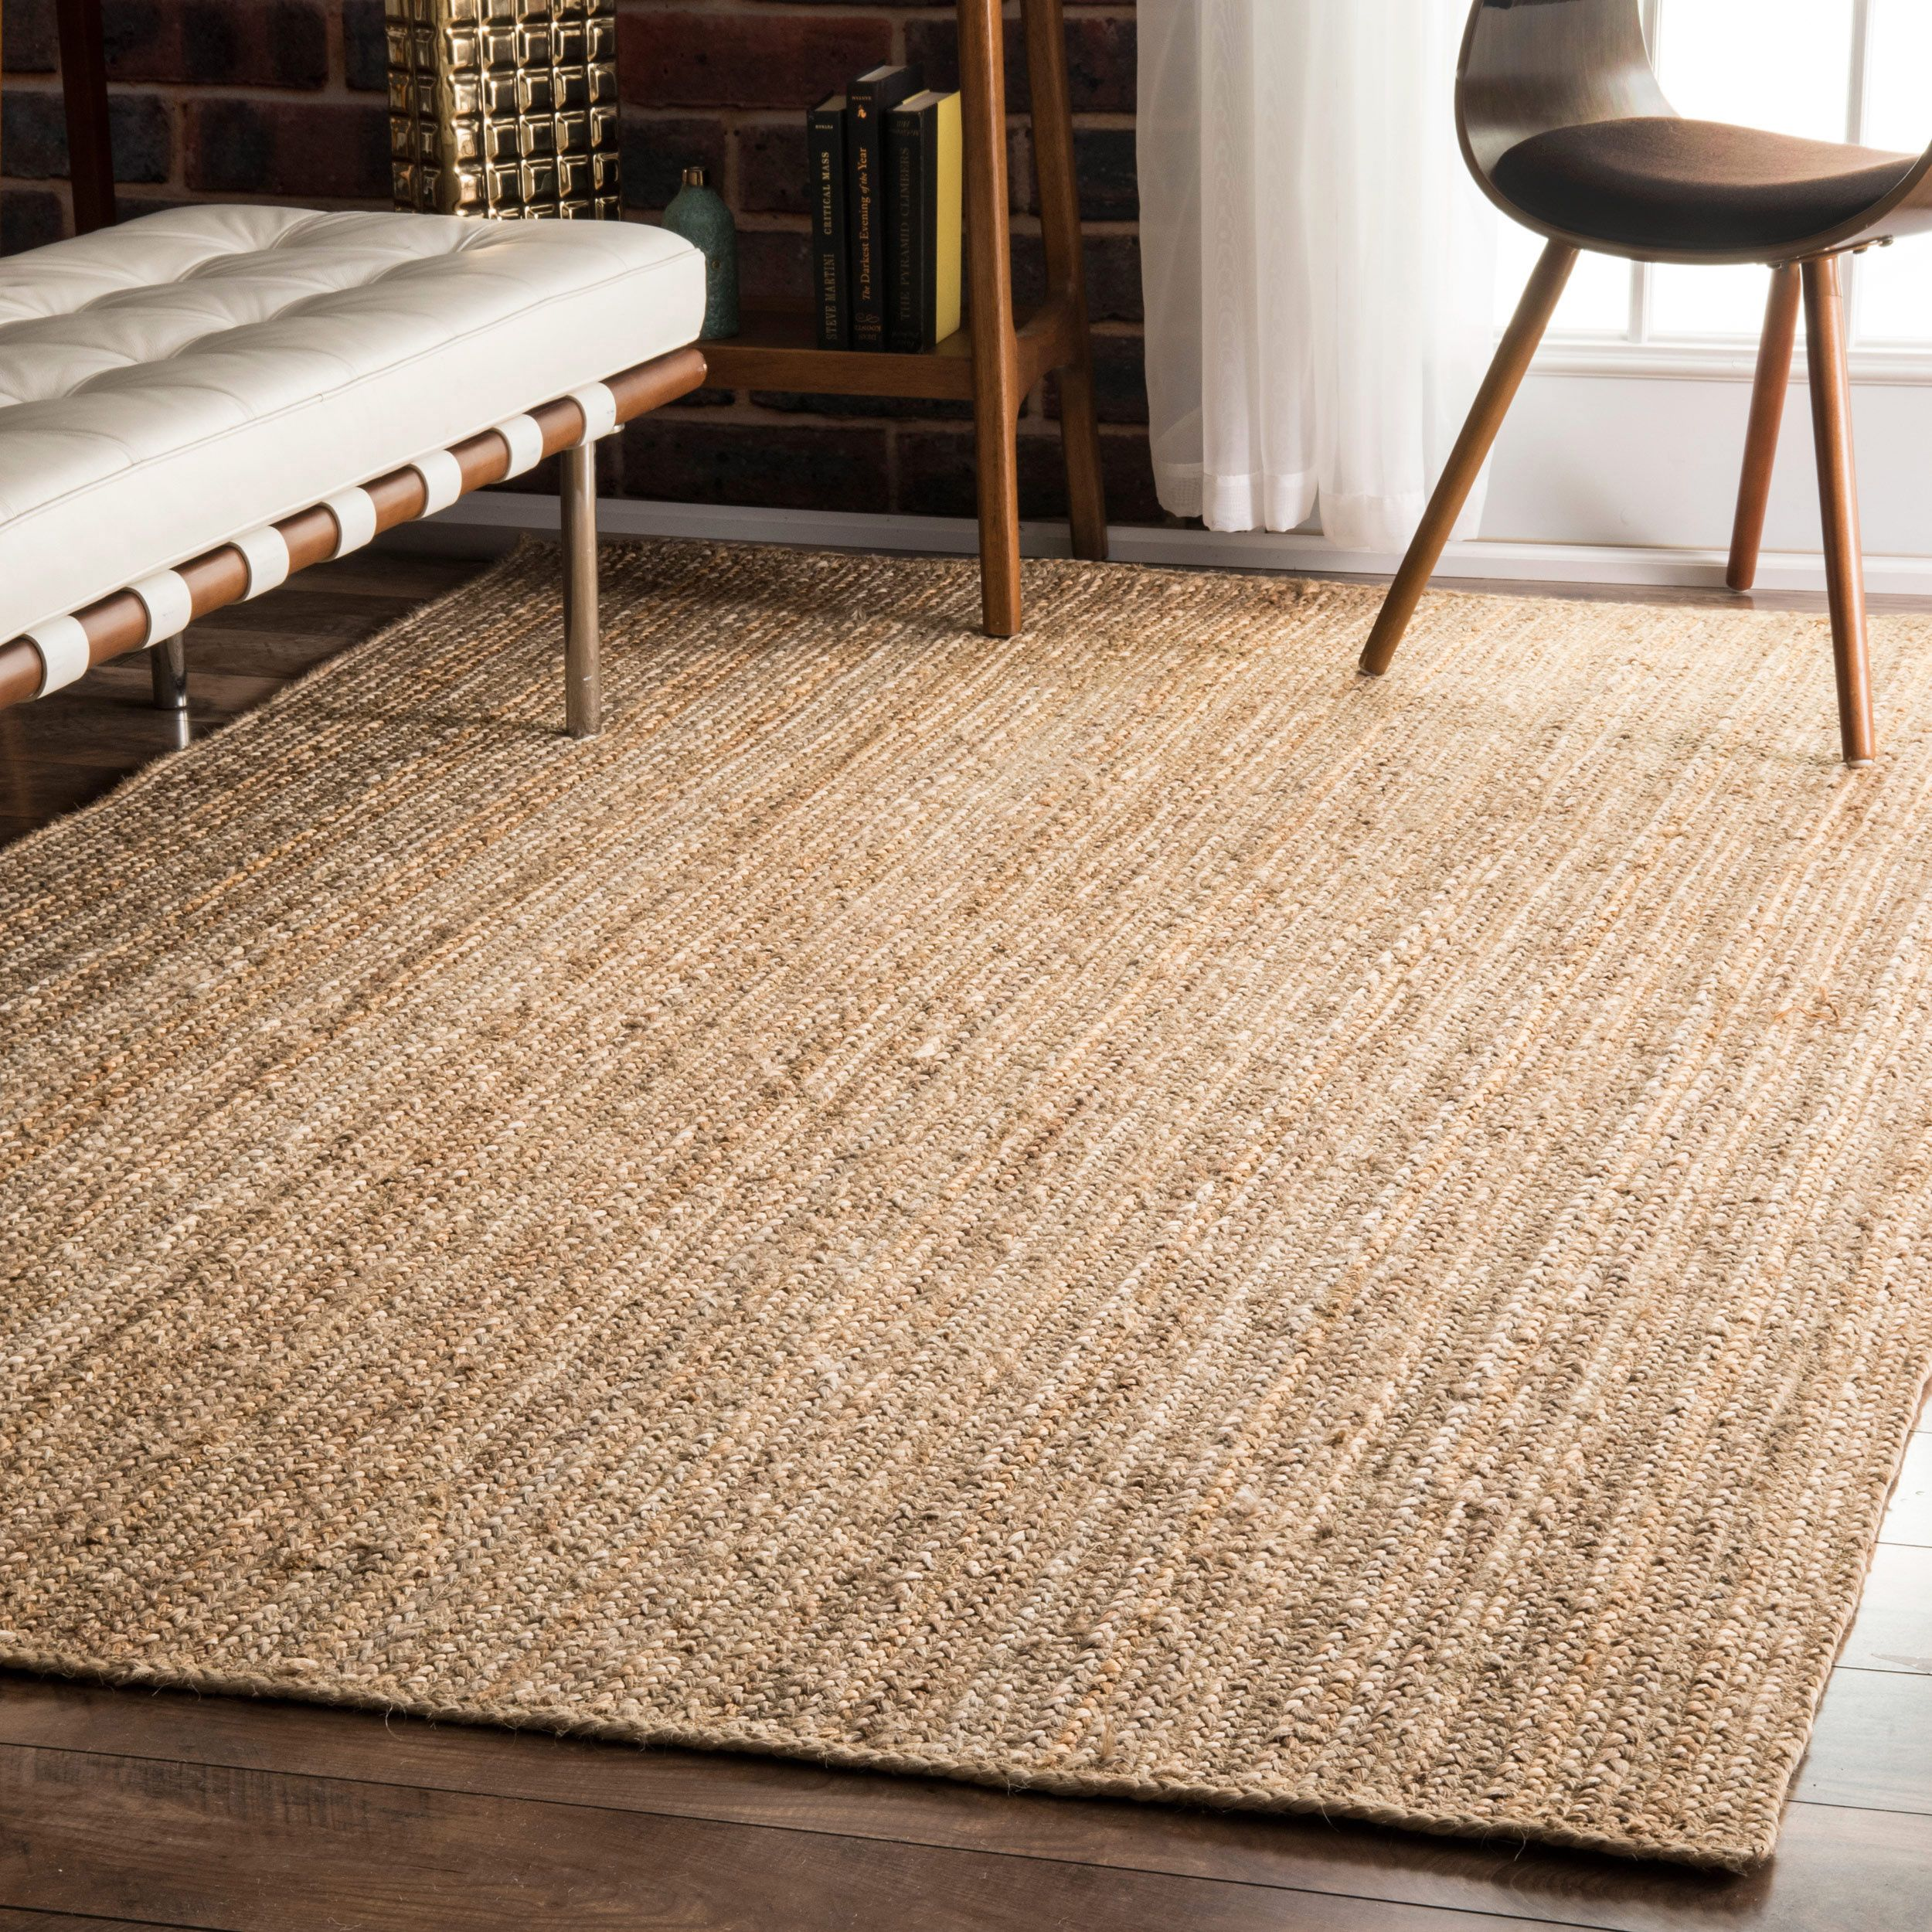 Nuloom Alexa Eco Natural Fiber Braided Reversible Jute Rug 8 X 10